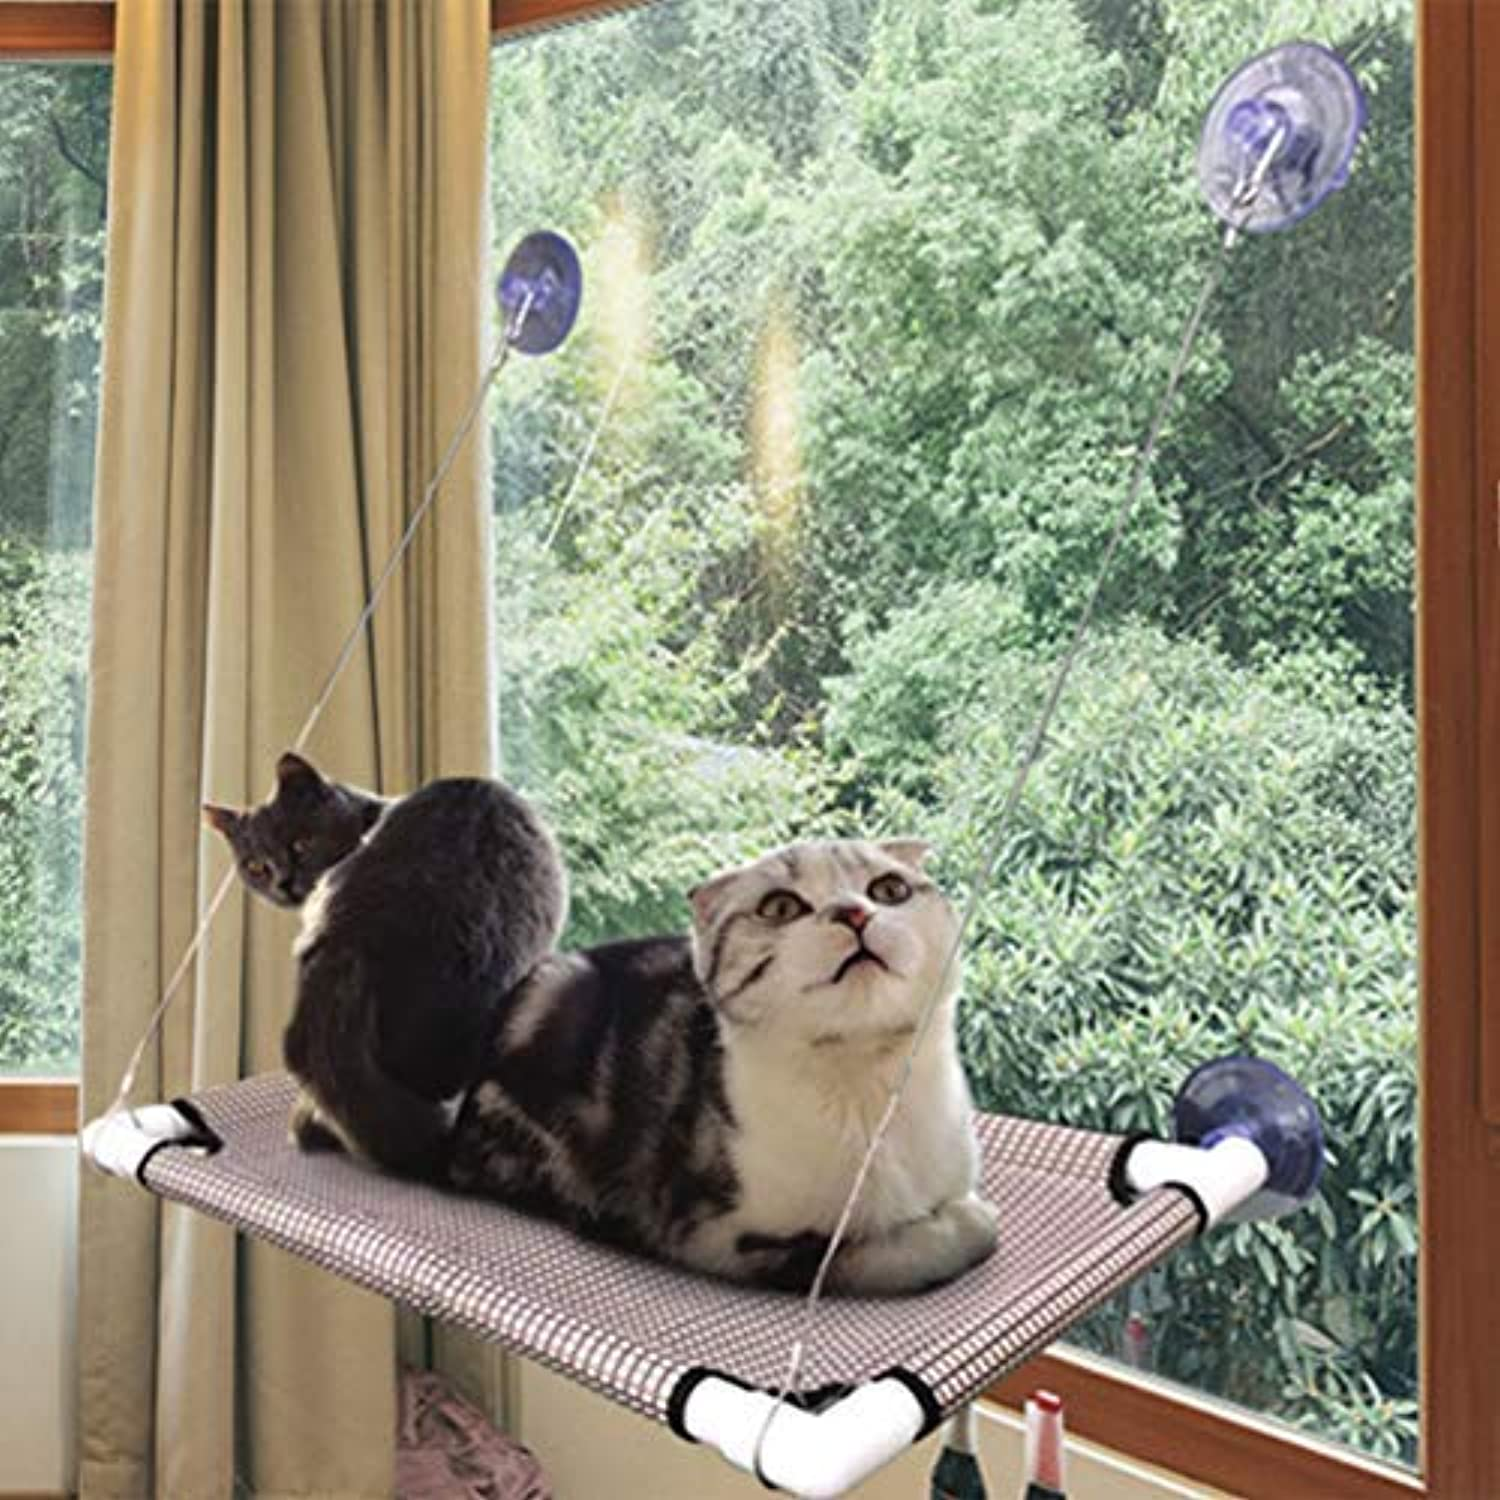 Cat Window PerchDurable Cat Hammock Strong Upgraded Version which Can Holds Up to 60lbs with 4 Big Suction Cups 100% Safe (White, Hanging Cat Window Perch)